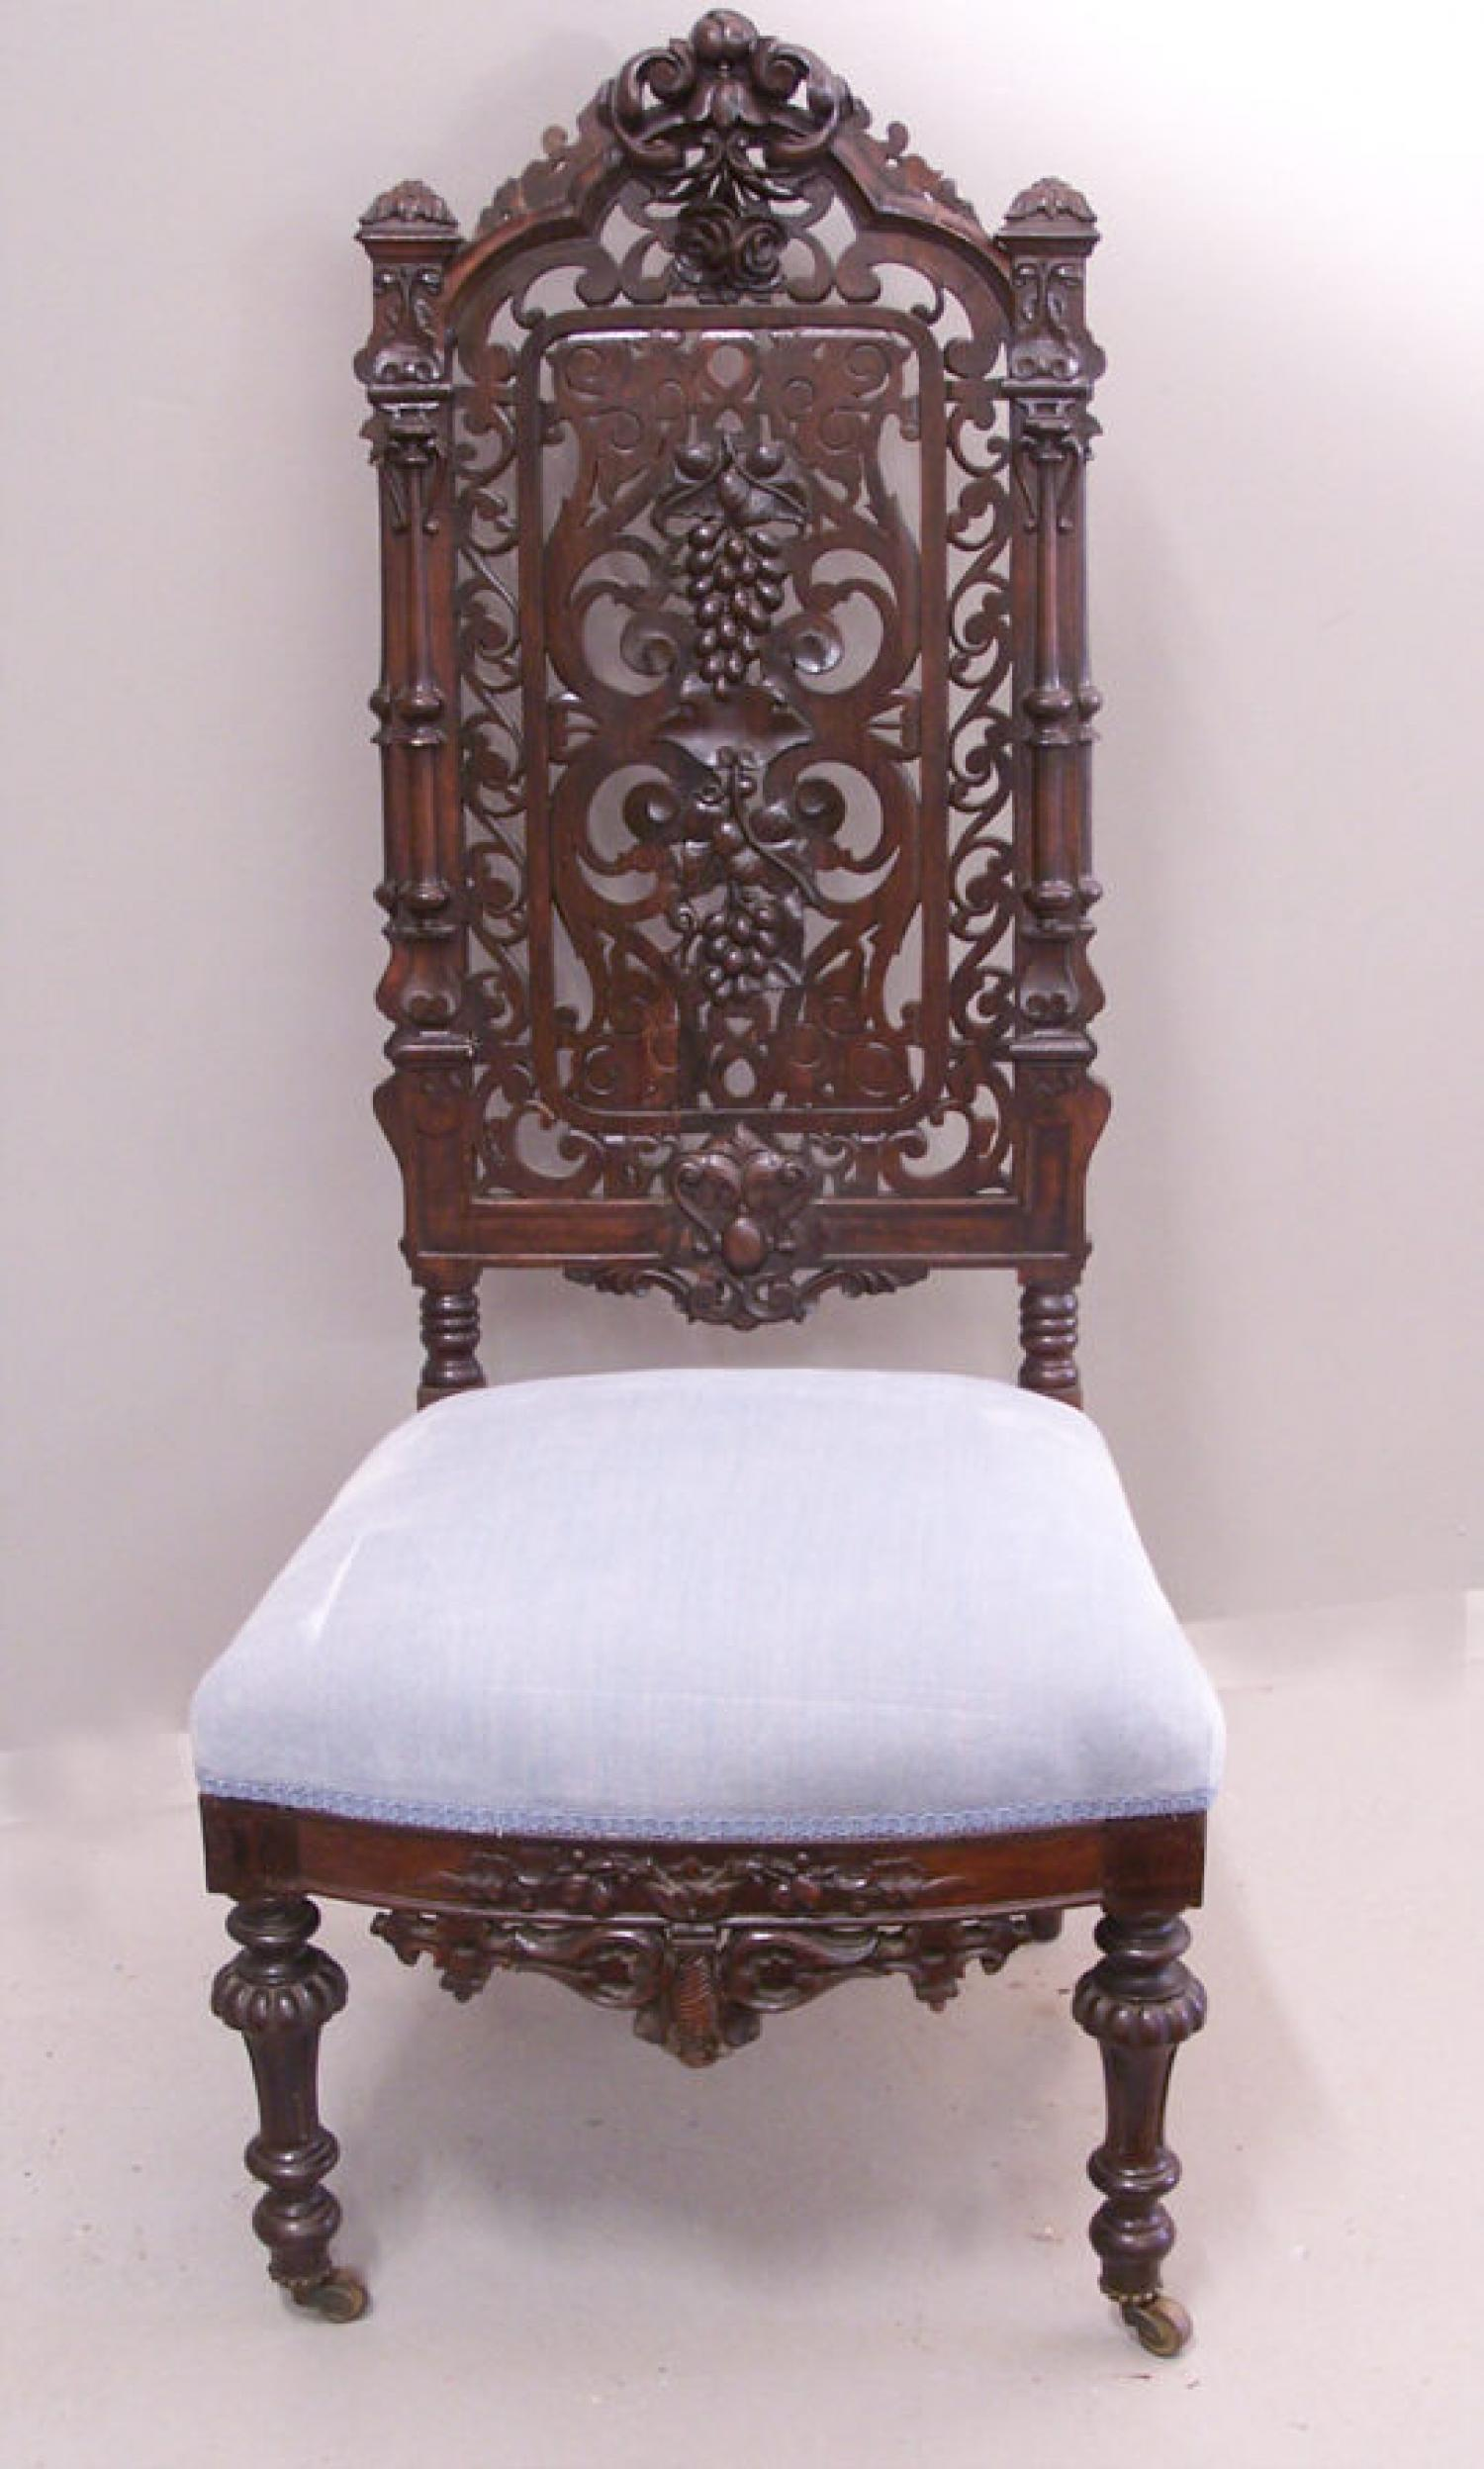 Victorian Gothic rosewood hand carved slipper chair c1850